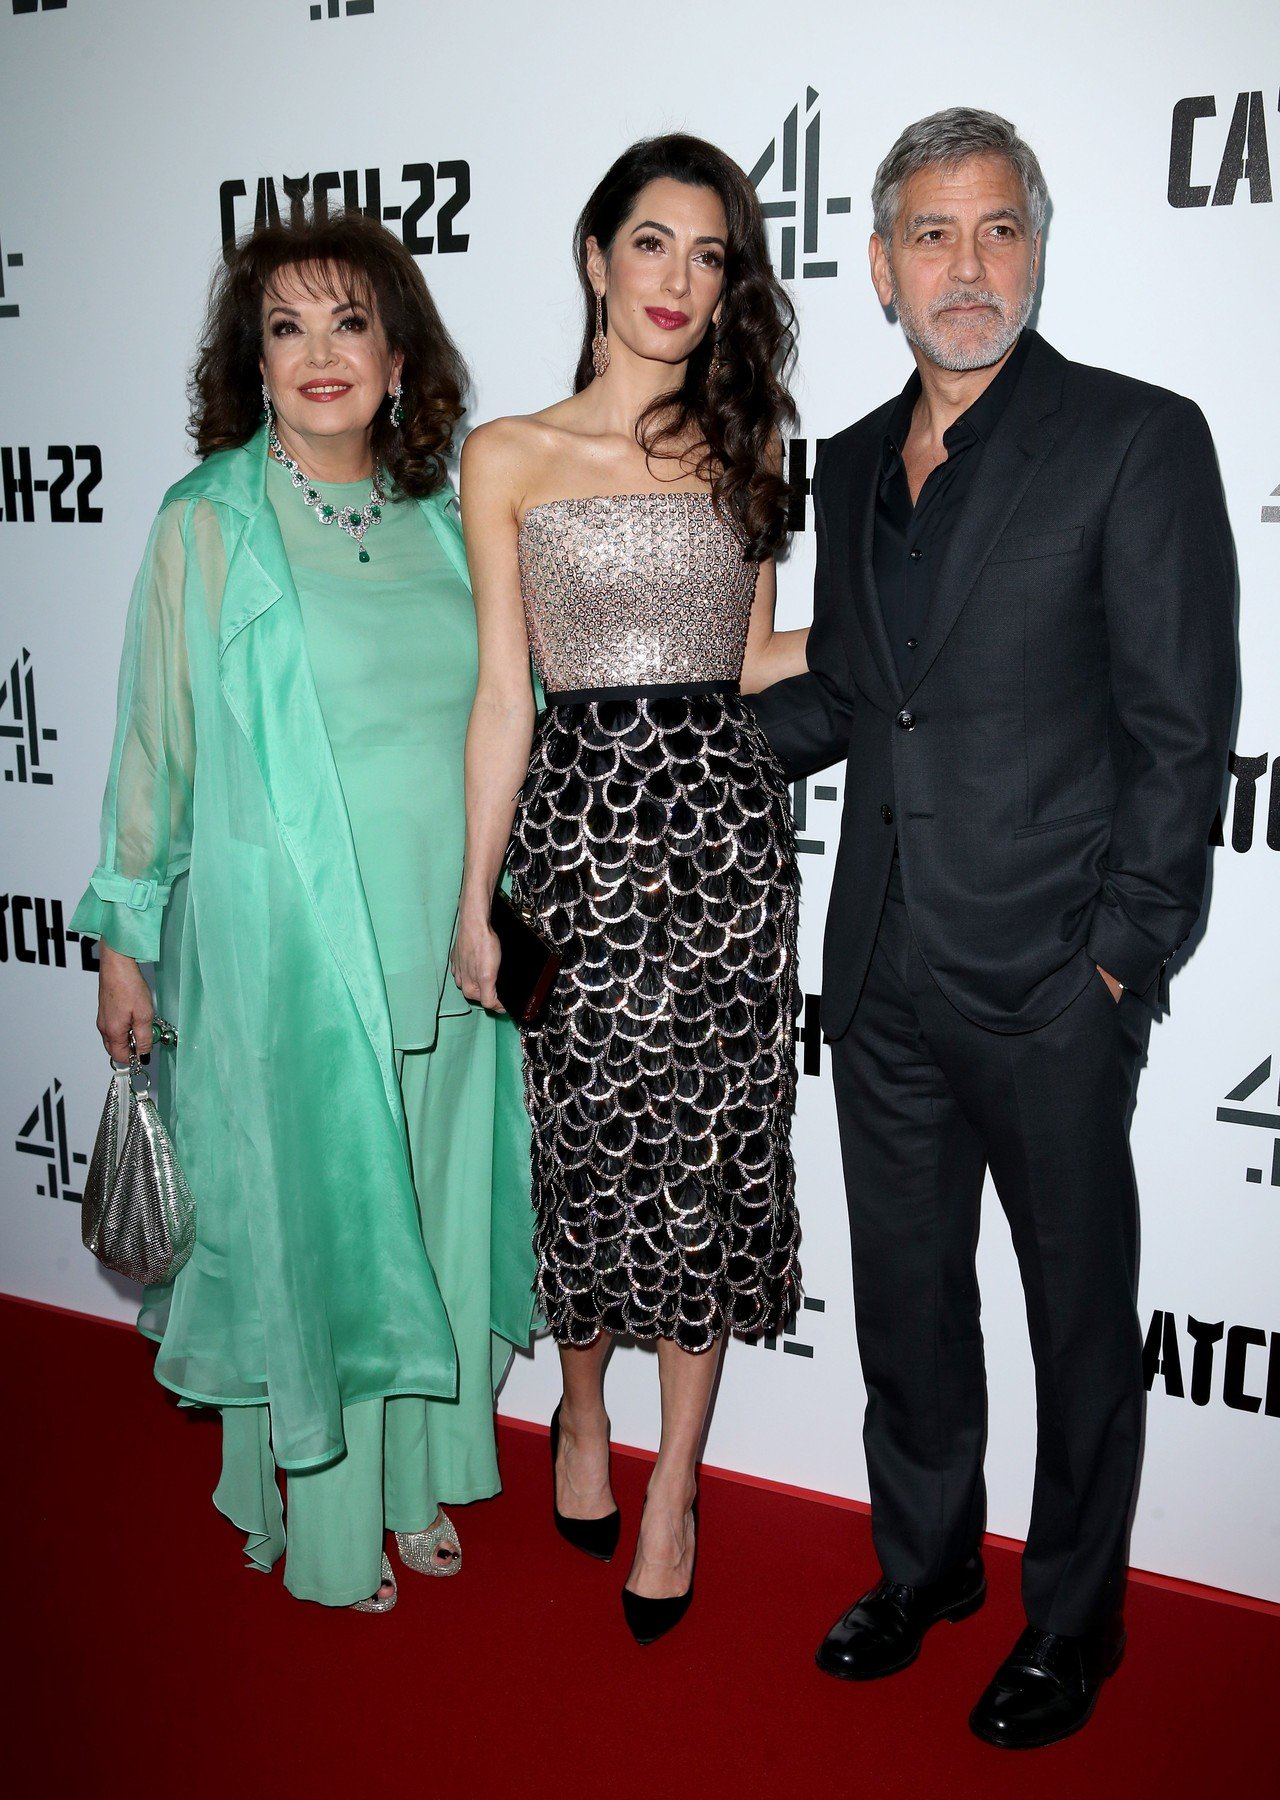 'Catch 22' TV premiere at Vue Cinema in Westfield,  London, UK. 15 May 2019, Image: 433496007, License: Rights-managed, Restrictions: World Rights, Model Release: no, Credit line: Profimedia, Mega Agency